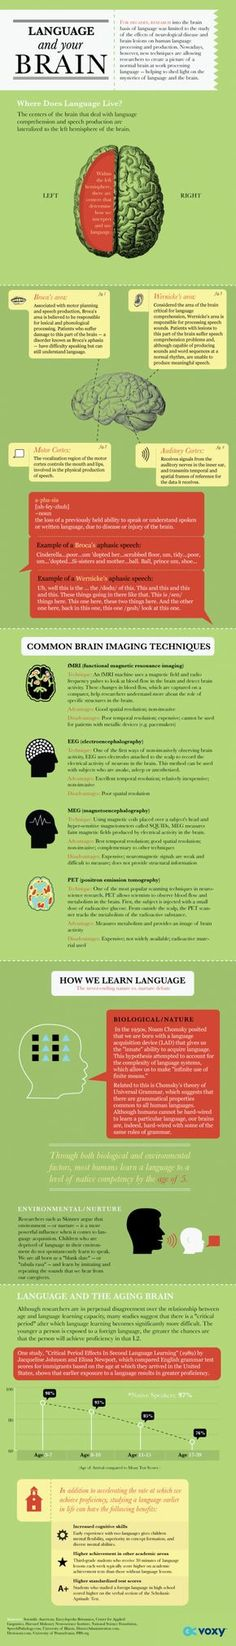 For centuries, researchers have studied the brain to find exactly where mechanisms for producing and interpreting language reside. Theories abound on how humans acquire new languages and how our developing brains learn to process languages. We take a look at the mysteries of language and the brain in the infographic below. Note to teachers: Continue reading …